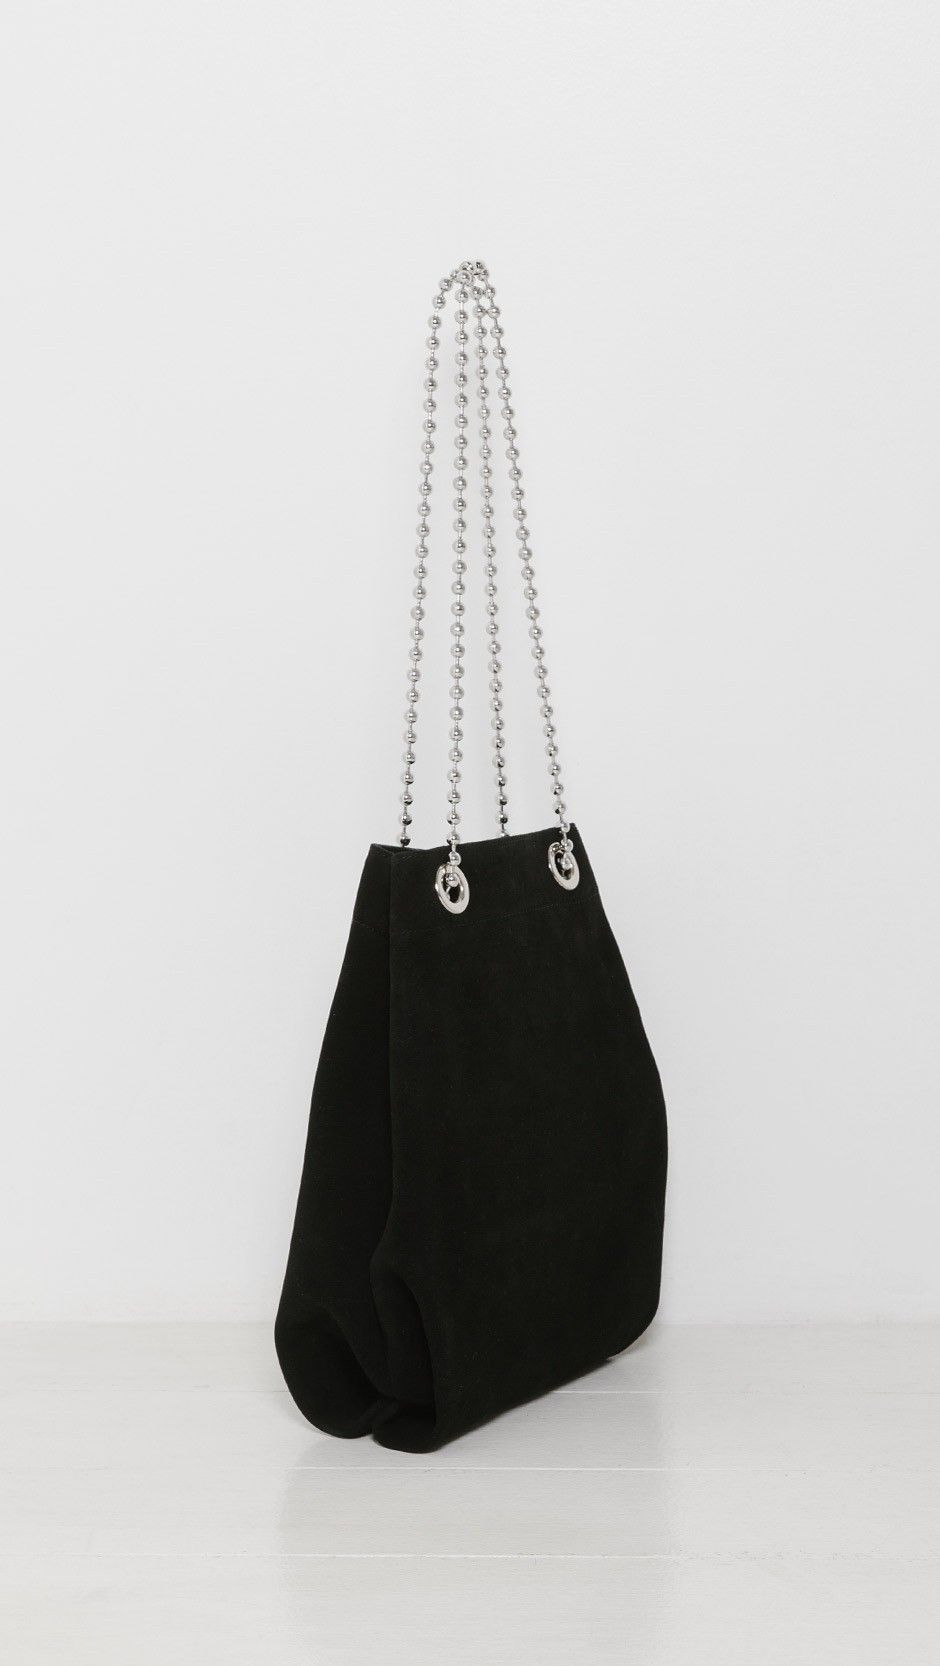 d98f9f8e92 MM6 Maison Martin Margiela Suede Chain Bag in Black 900 | The ...